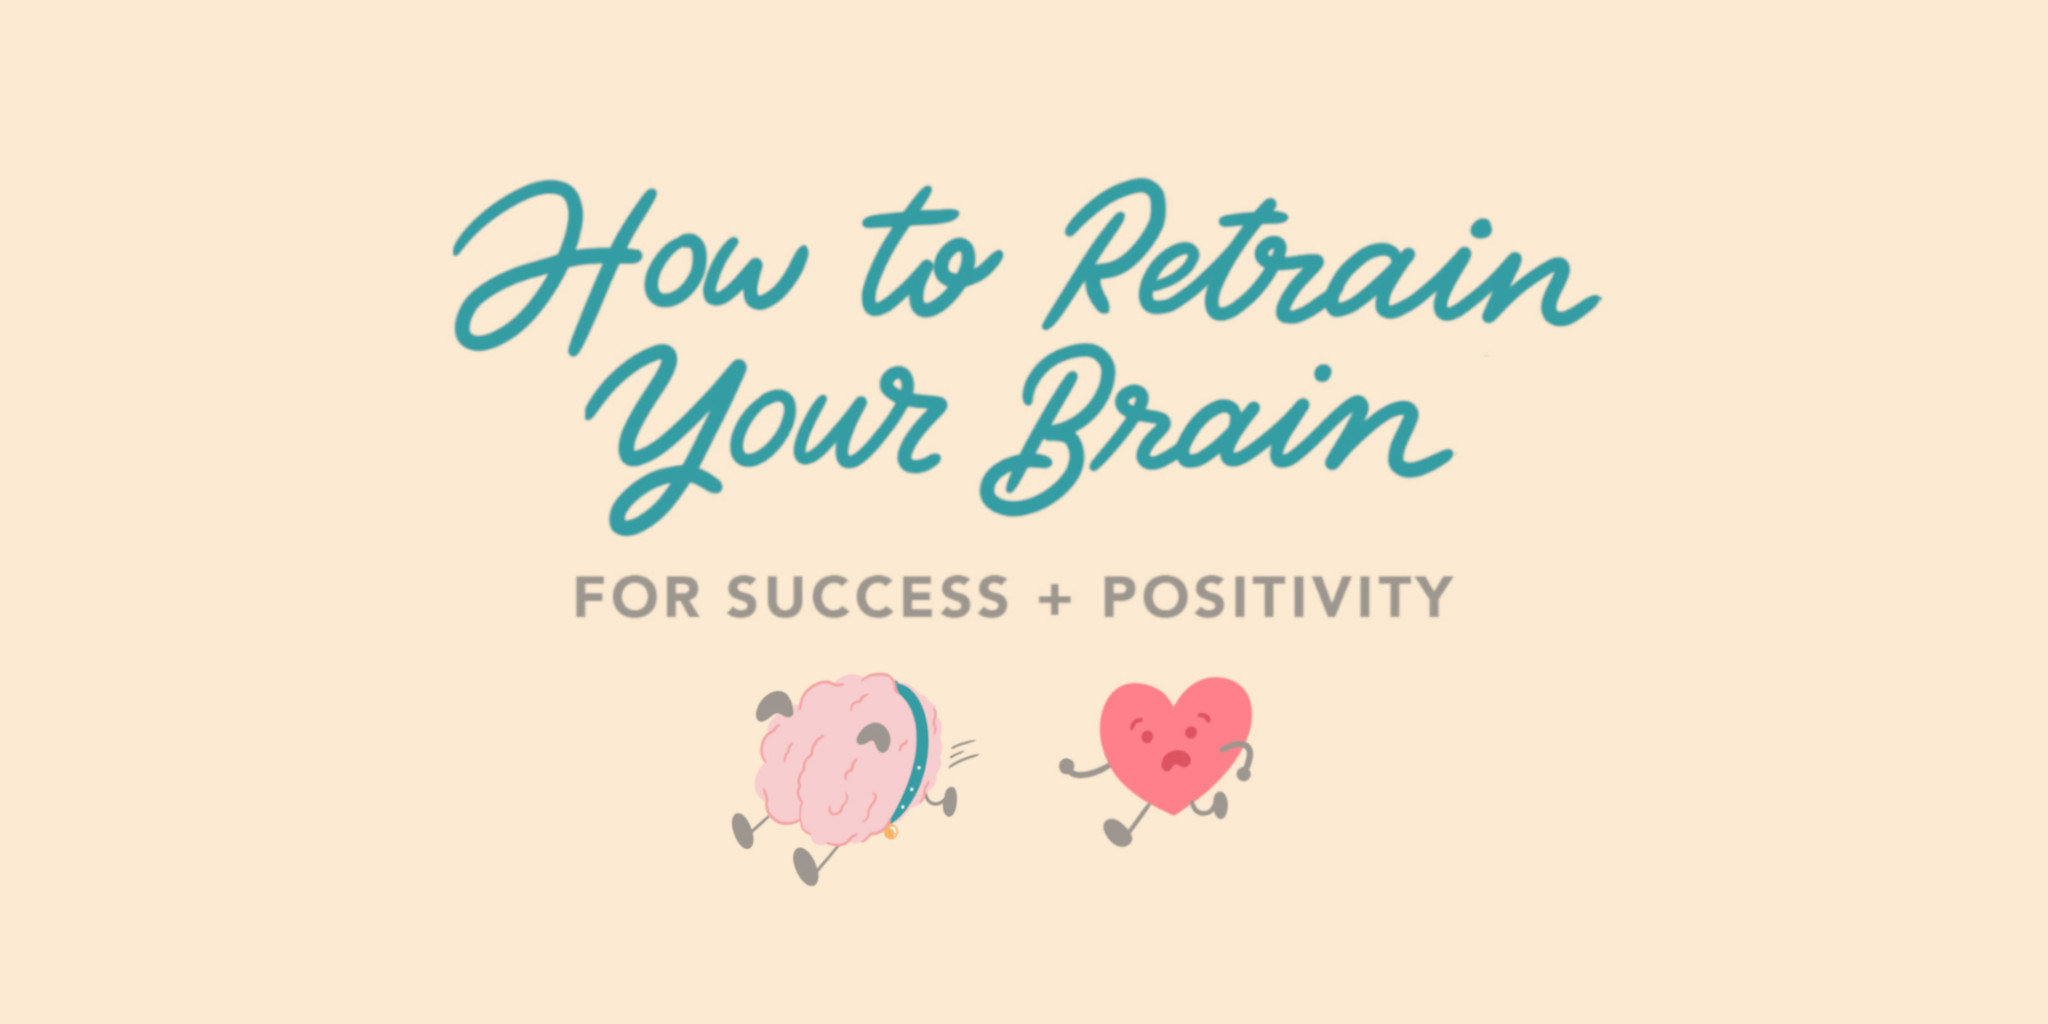 How to Curb Negative Thinking and Retrain Your Brain